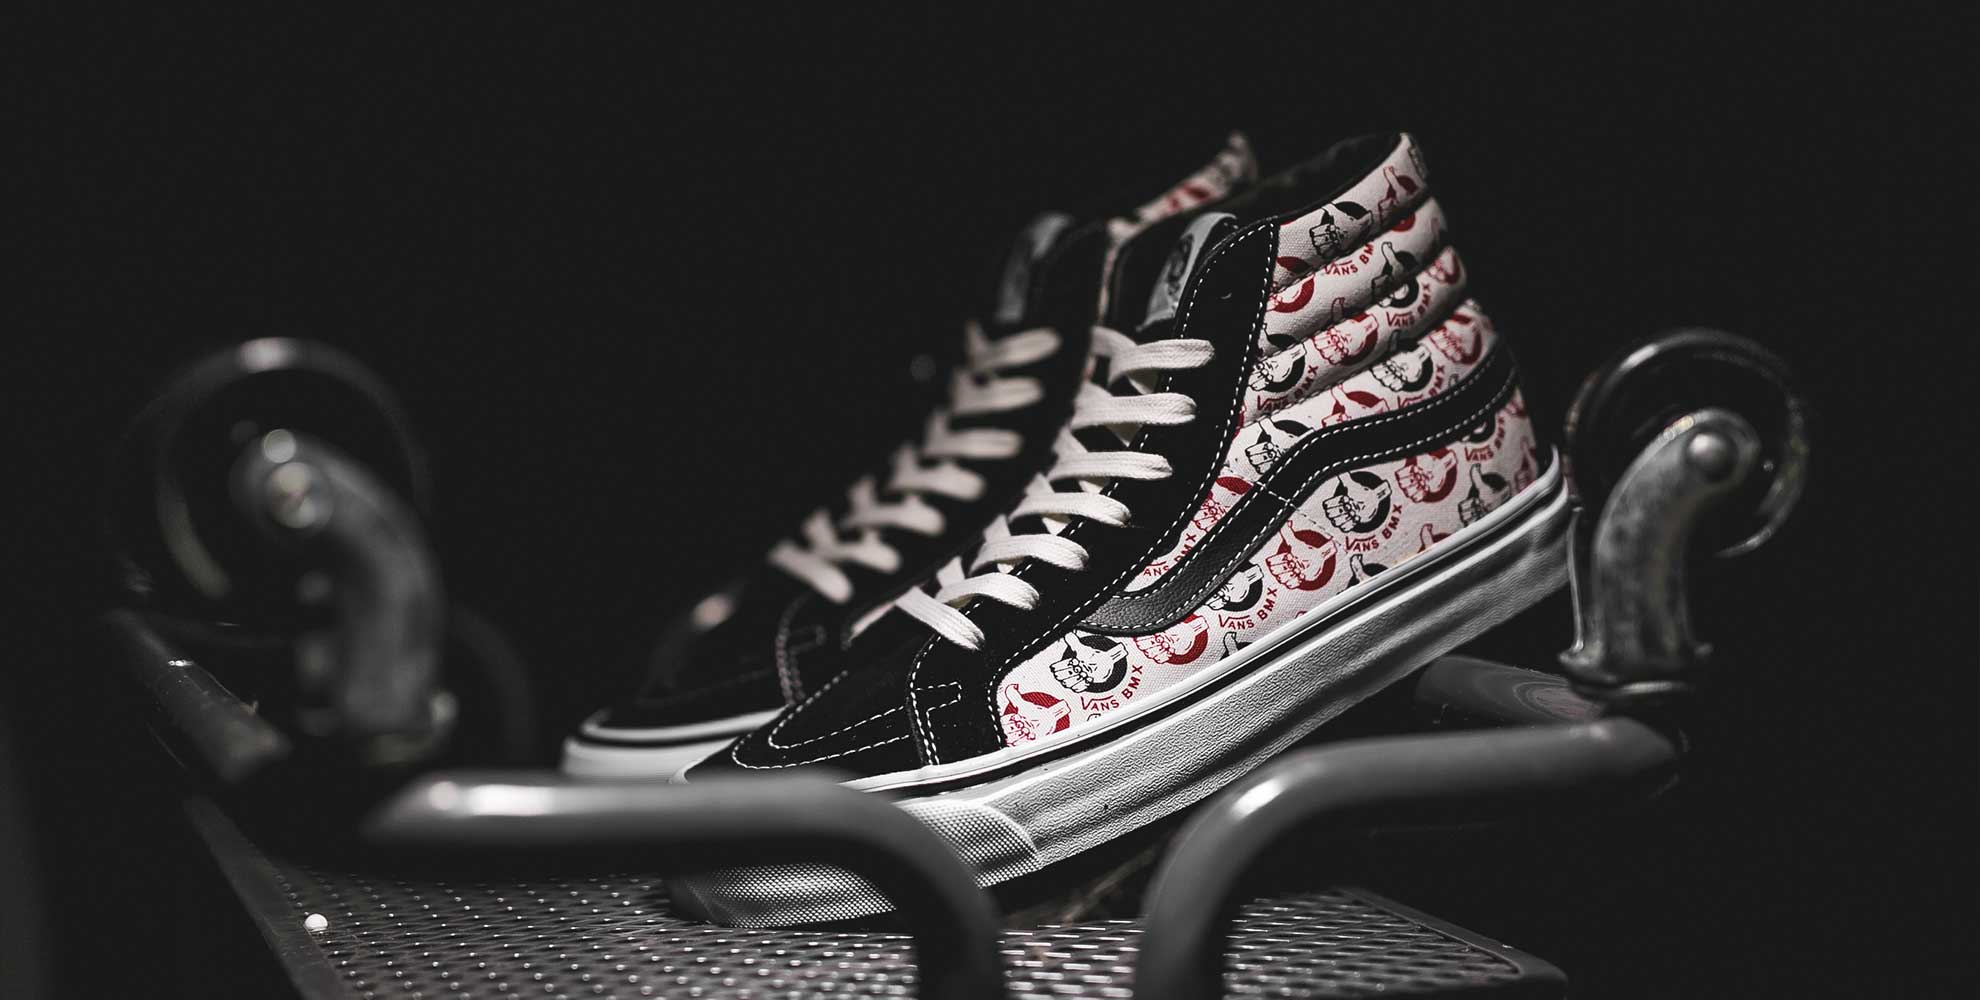 VAULT BY VANS X NEIGHBORHOOD